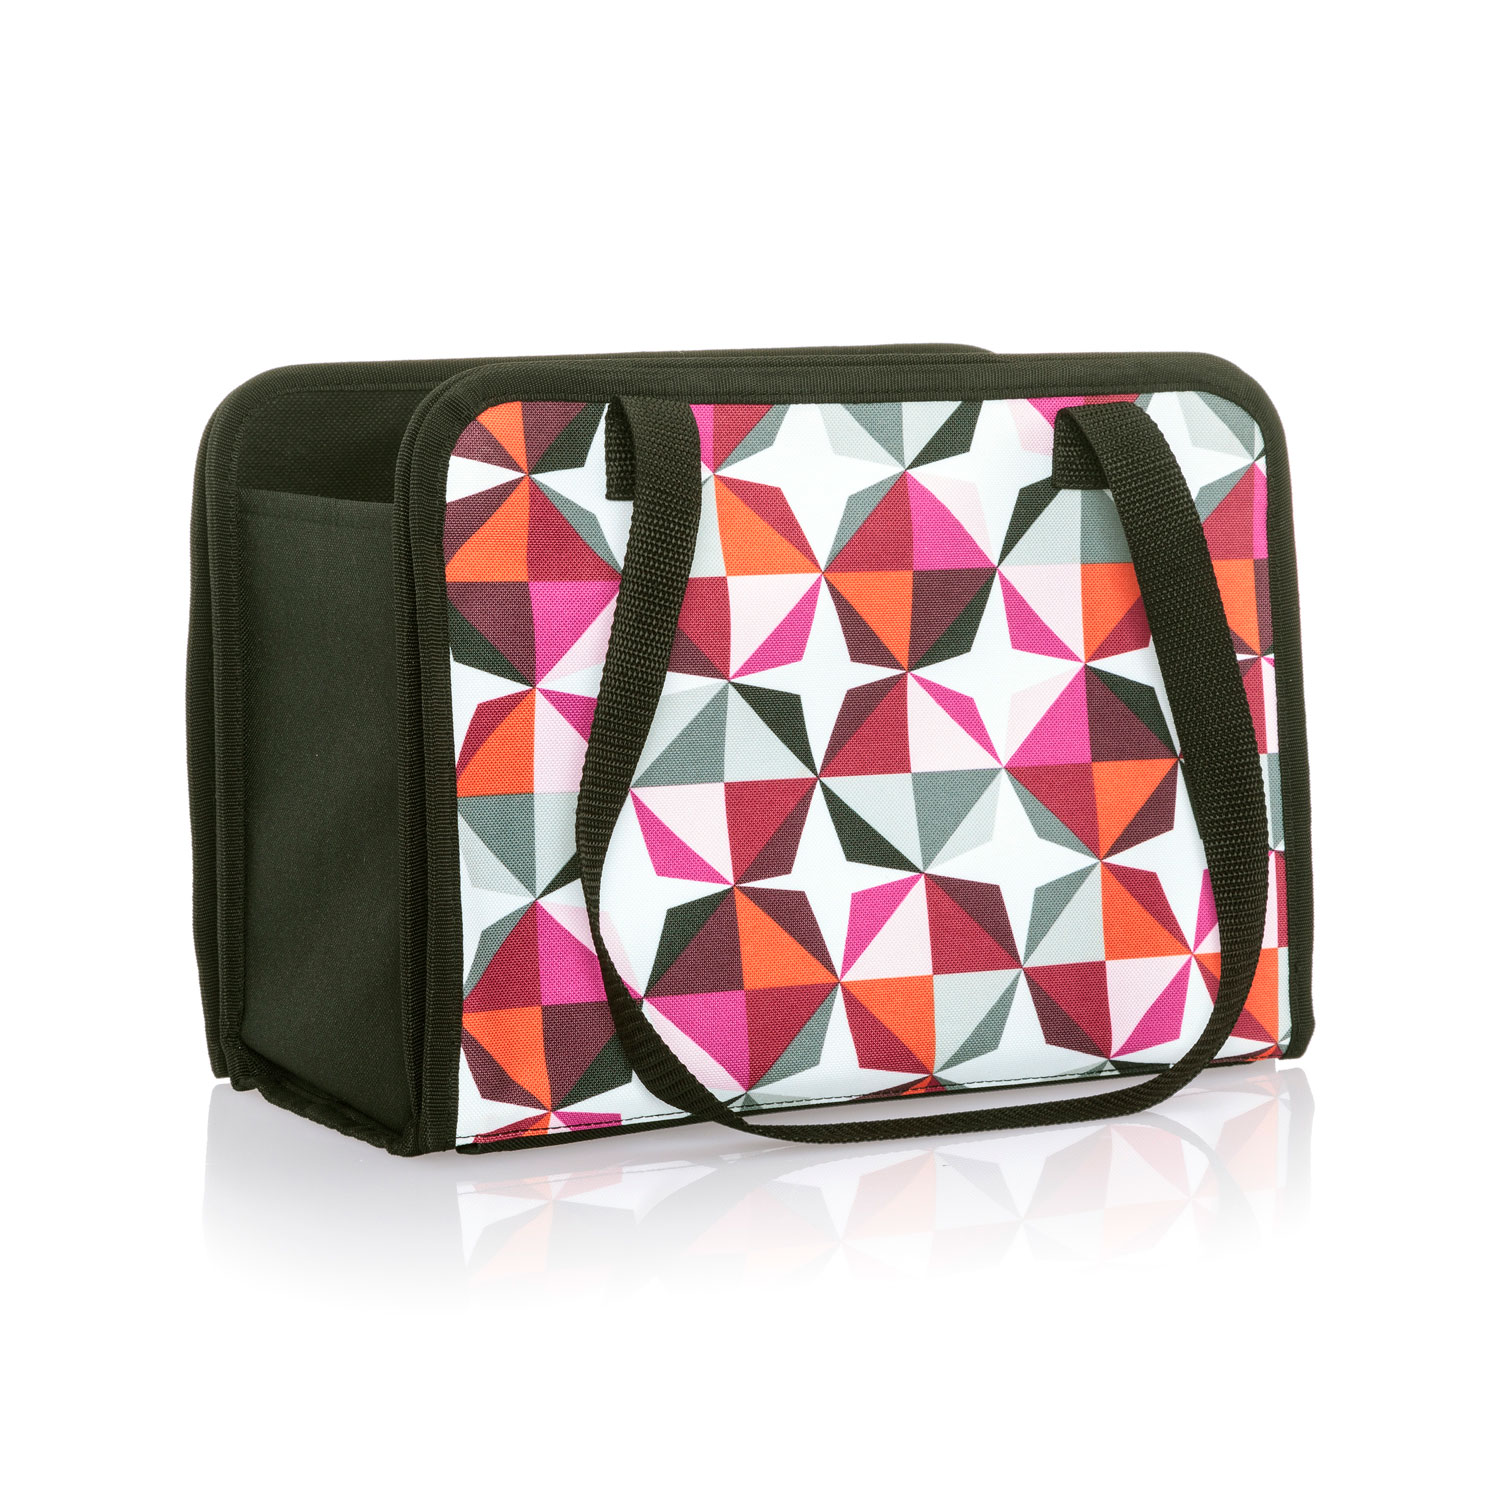 Origami Pop - Get Creative Caddy - Thirty-One Gifts